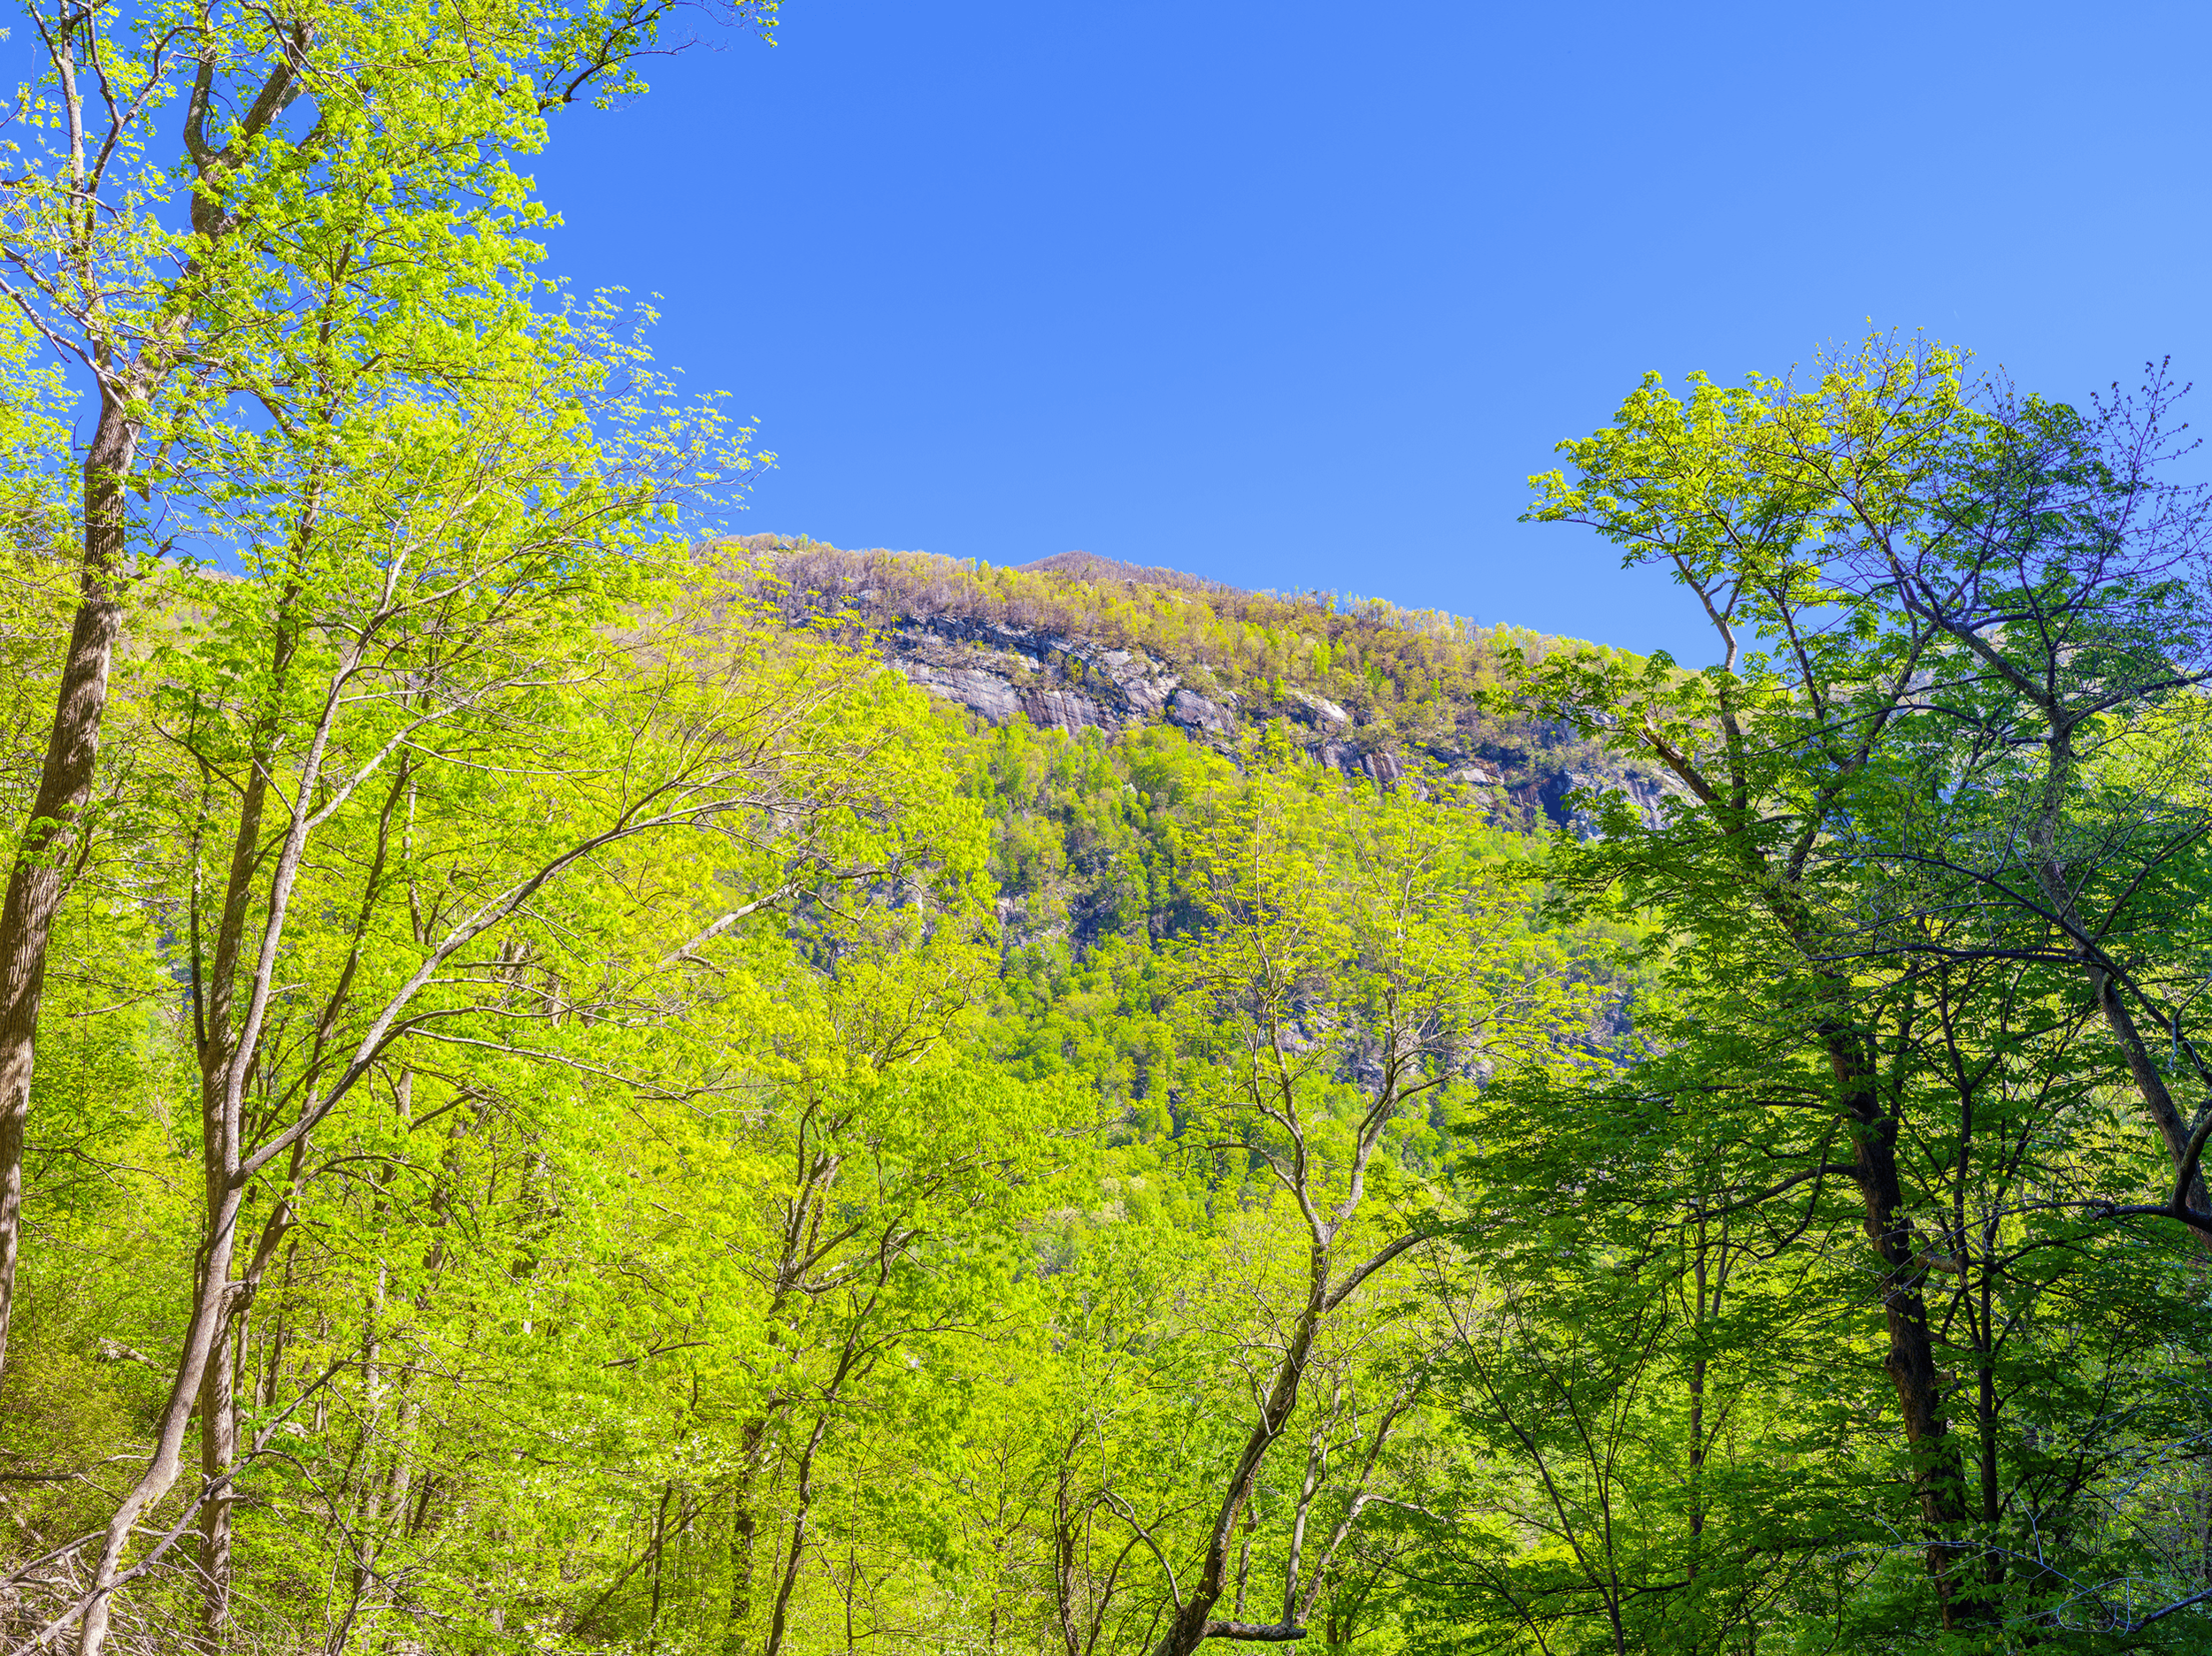 The viewing platform at  Hickory Nut Falls  also allows you to peek through the tree-canopy at the 3,816-foot (1,163 meters)  Shumont Mountain  on the other side of the valley.